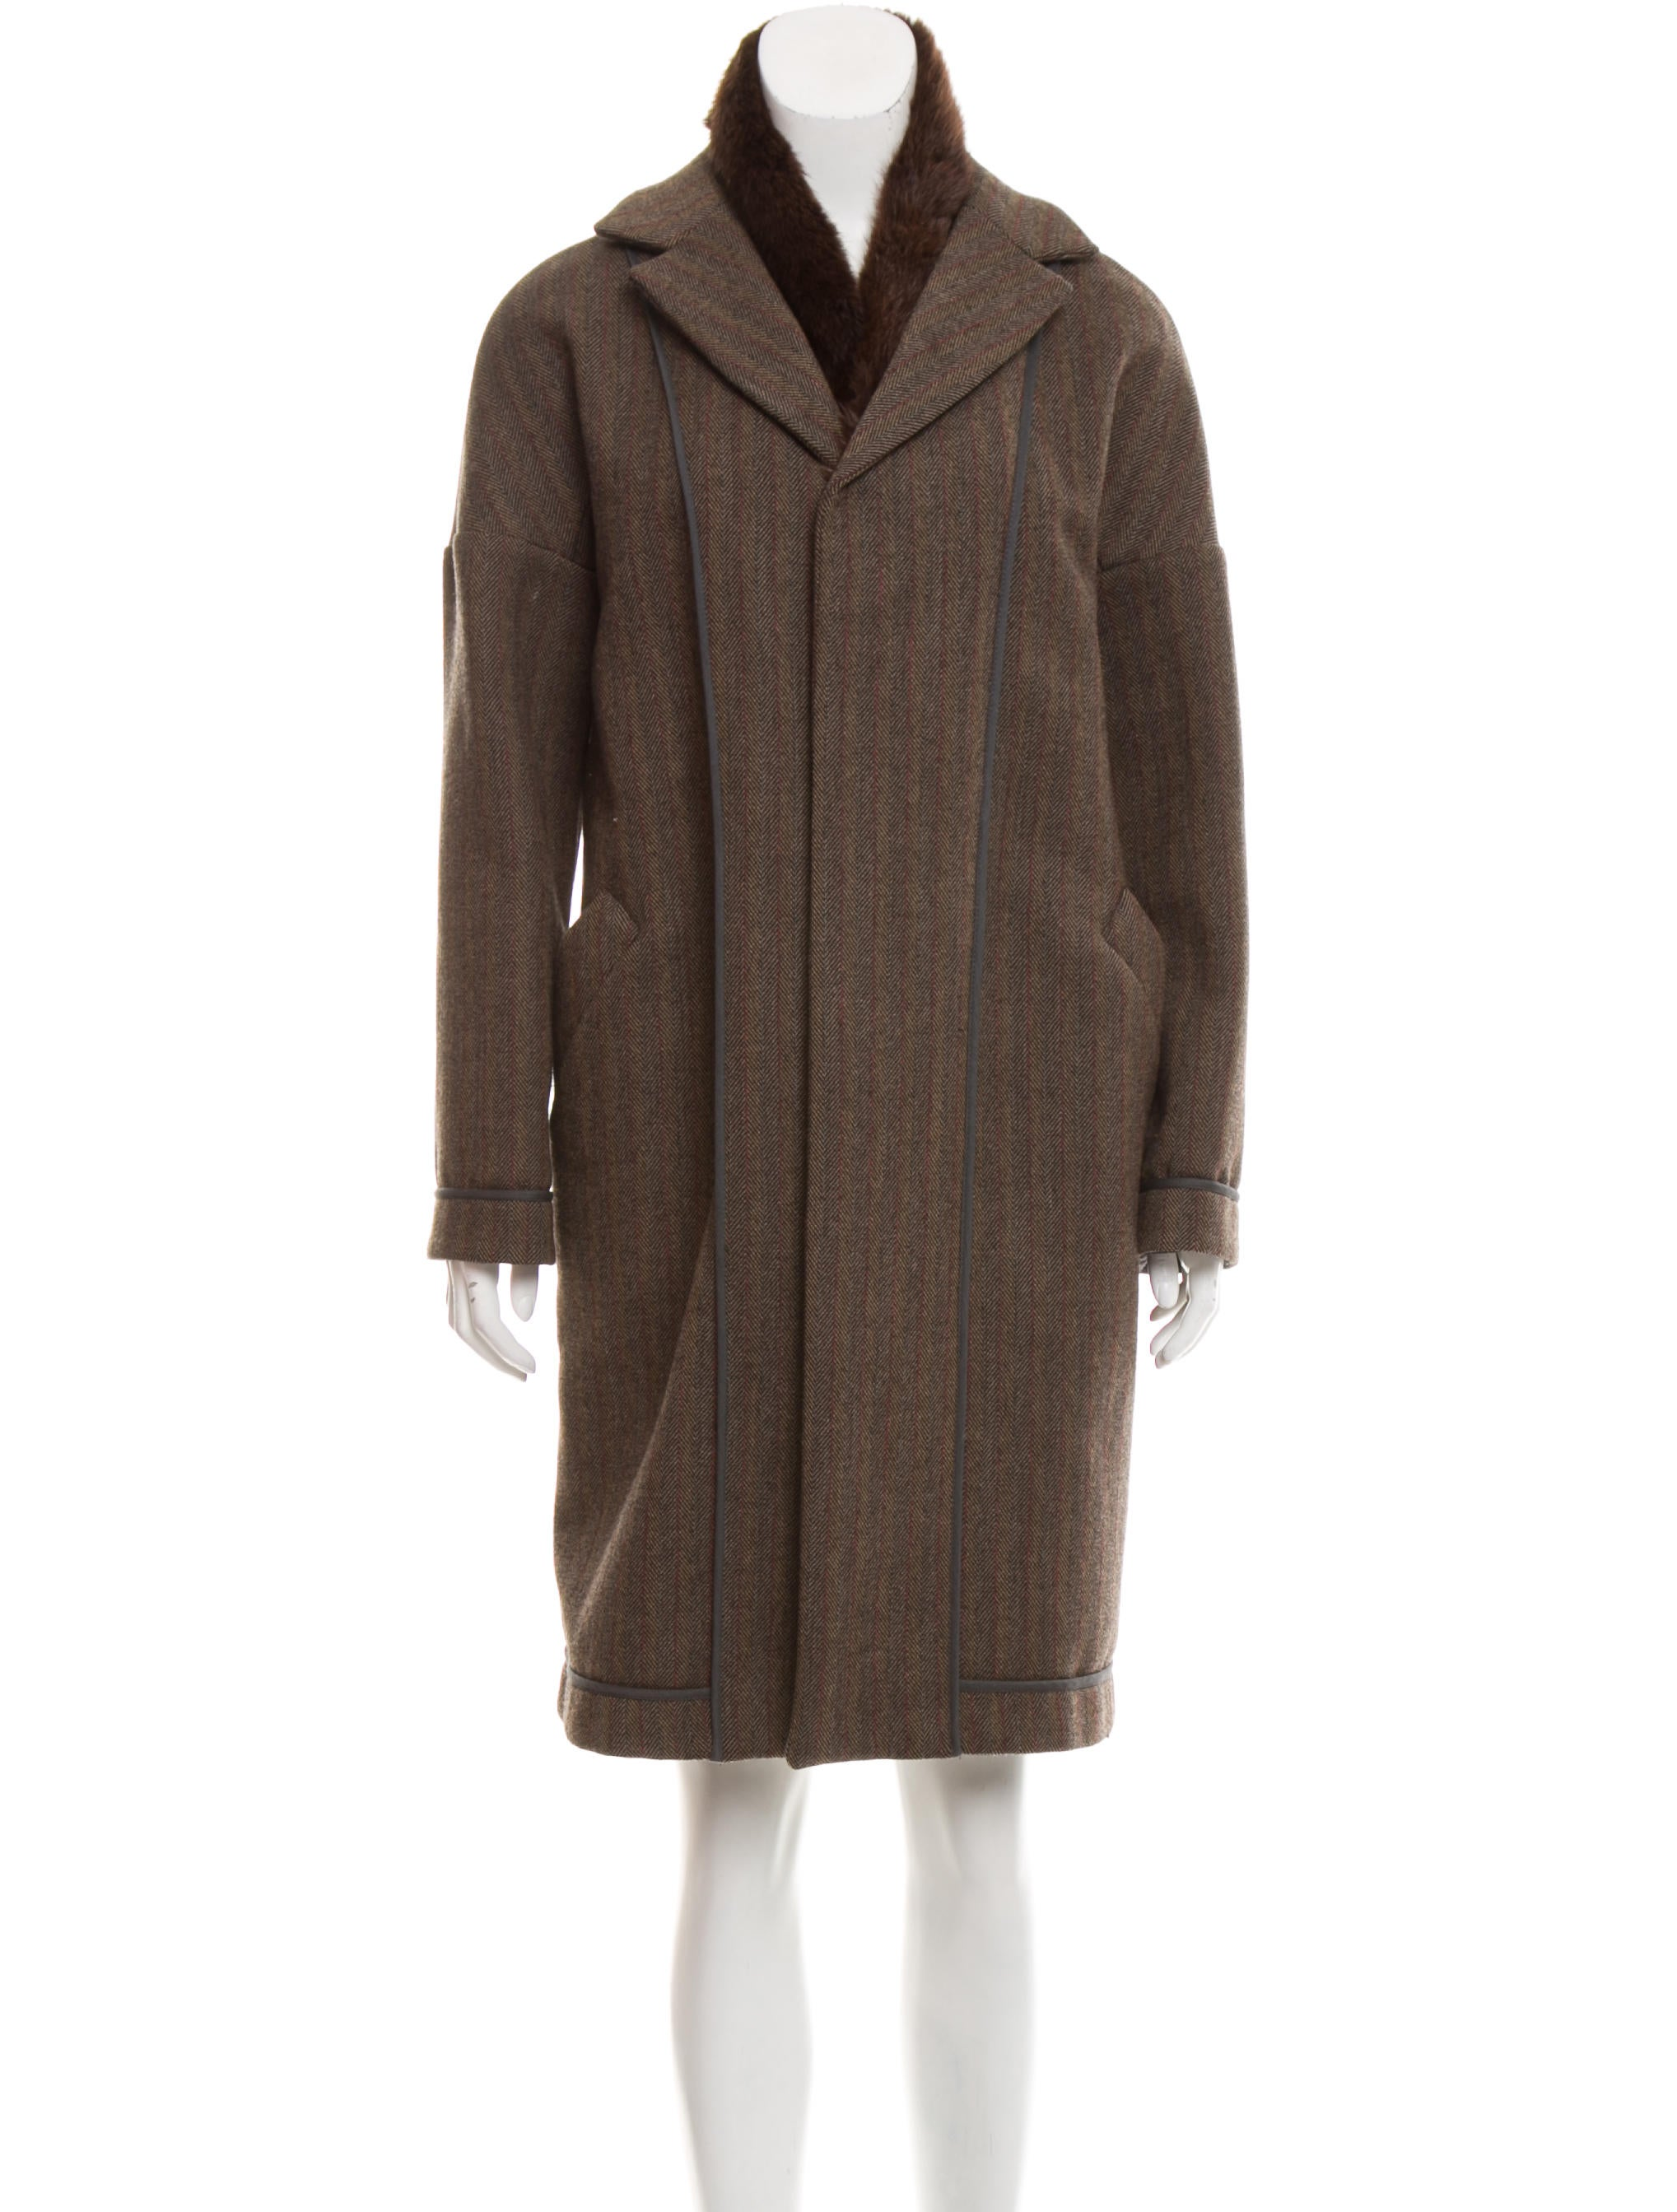 Find fox fur trim wool coat at ShopStyle. Shop the latest collection of fox fur trim wool coat from the most popular stores - all in one place.